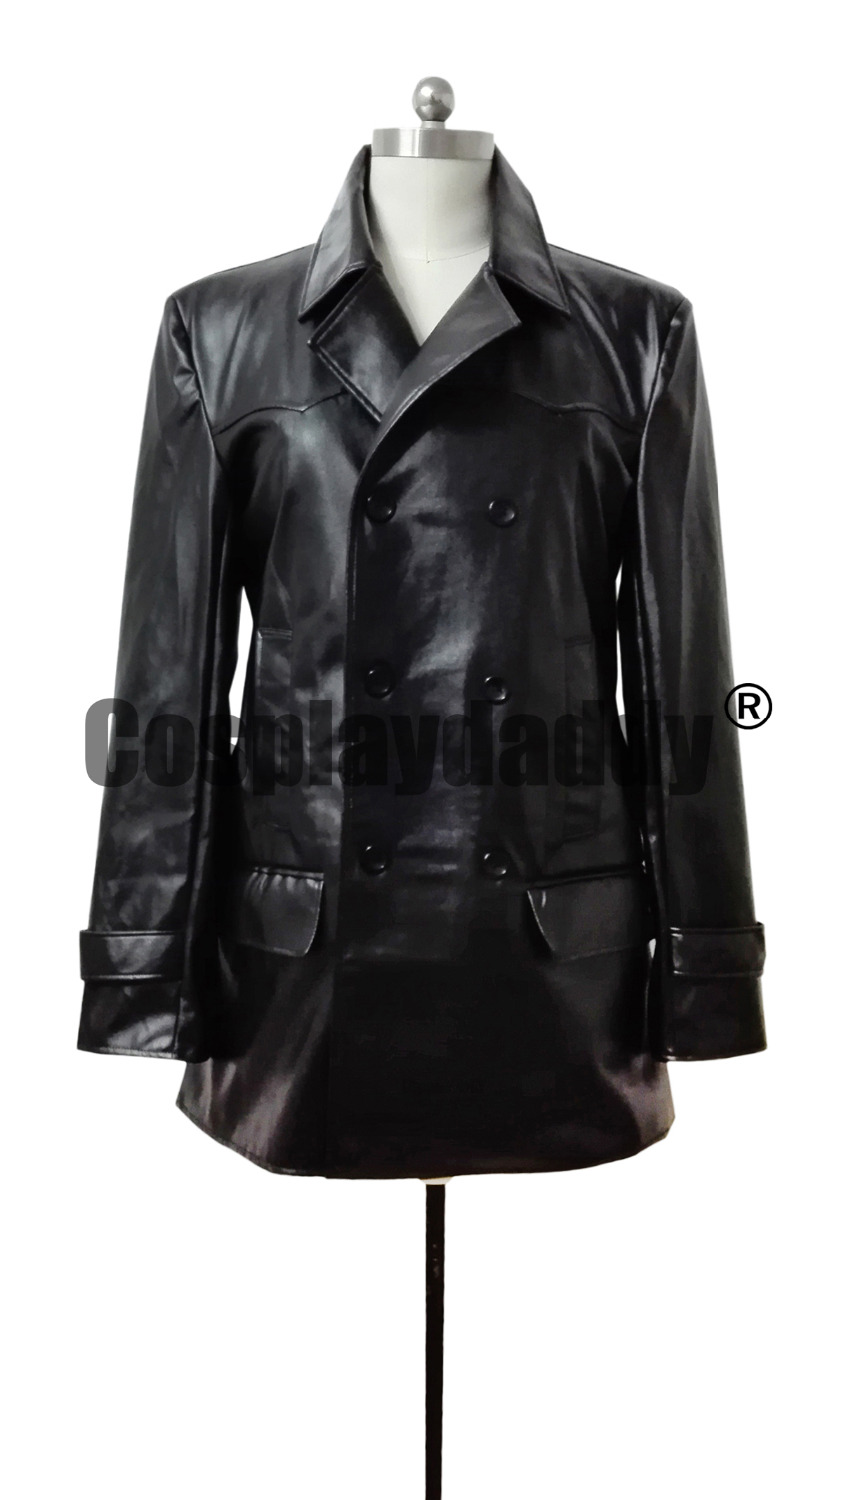 DR. WHO THE 9TH DOCTOR COSTUME BLACK LEATHER JACKET COSPLAY COSTUME